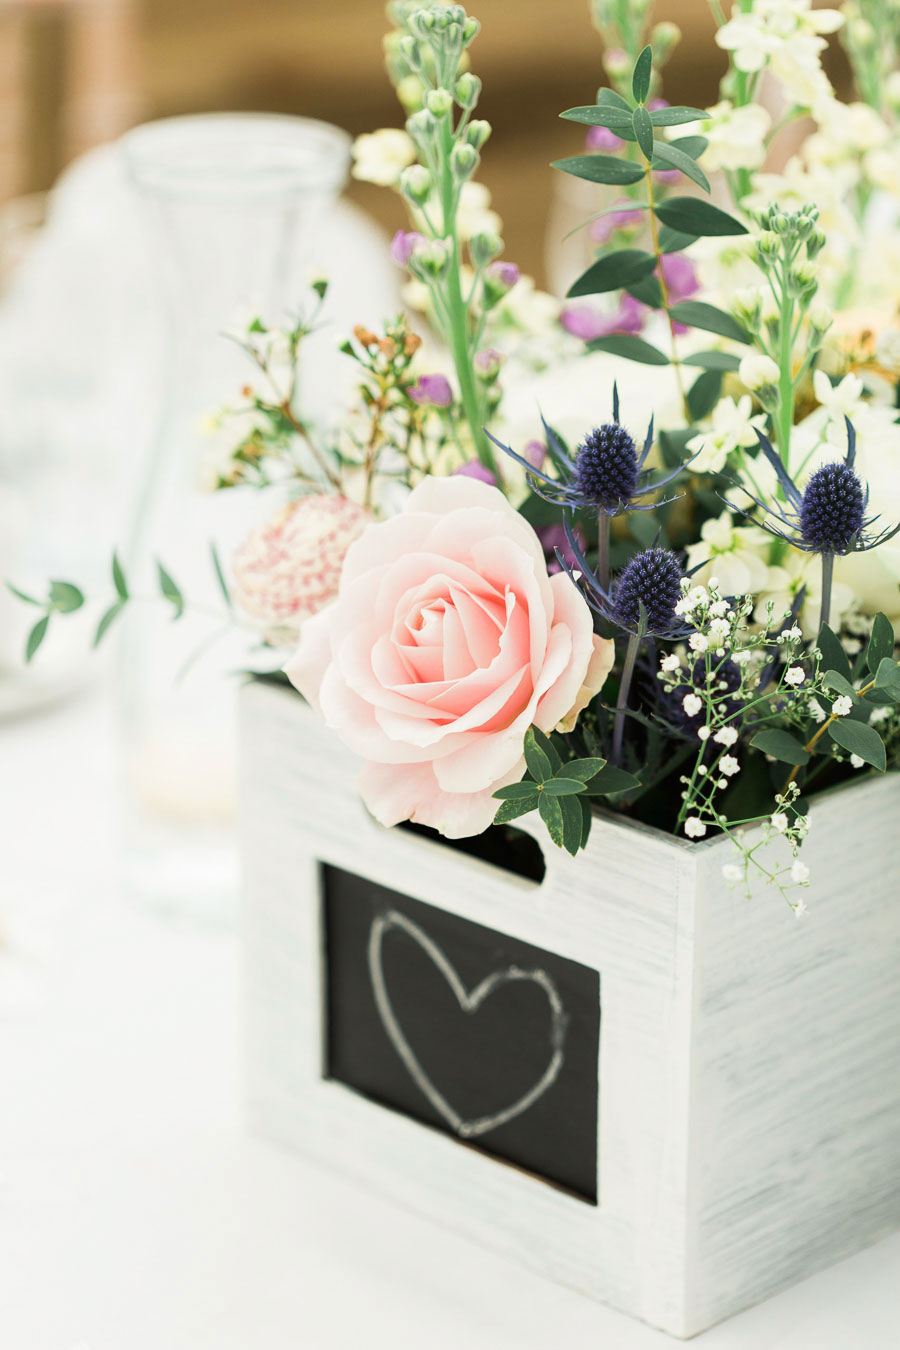 Rustic Wedding With Floral & Pastel Accents0097